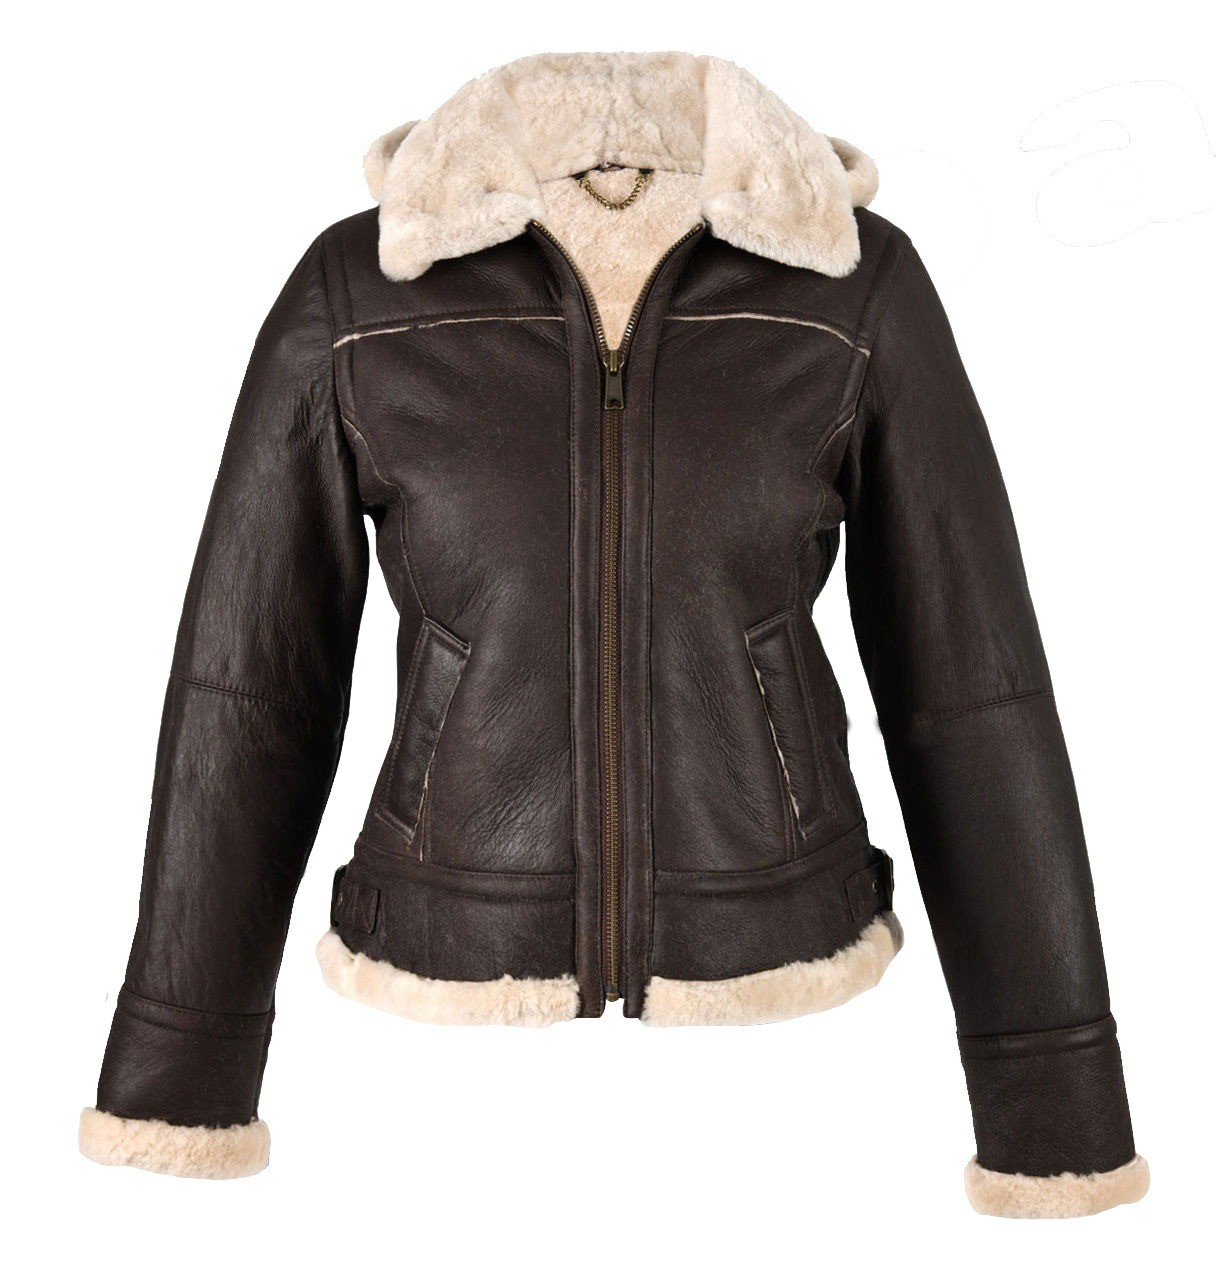 WOMEN DARK BROWN GENUINE SHEEPSKIN LEATHER JACKET